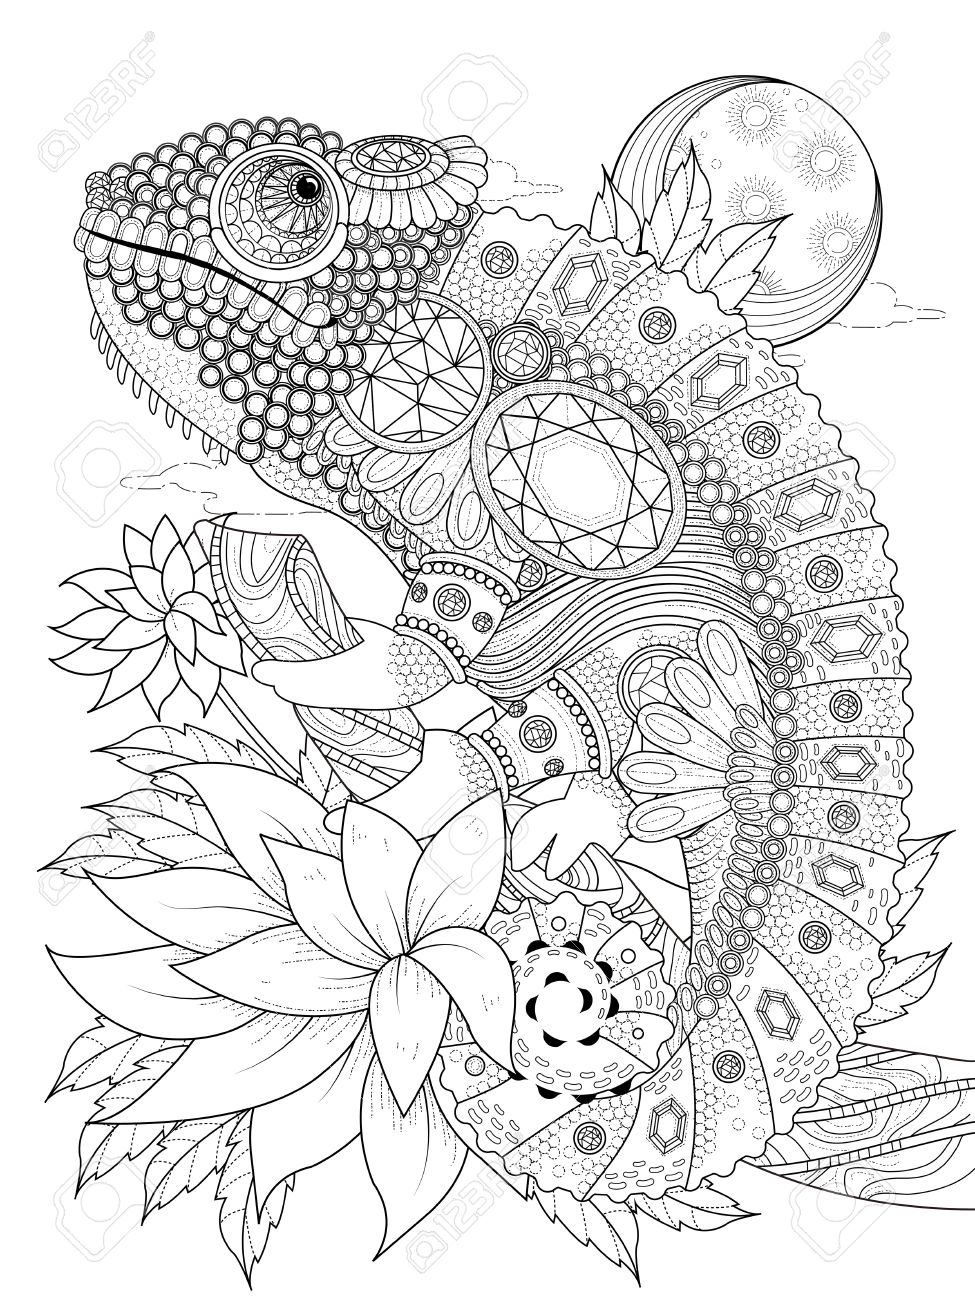 Free coloring pages chameleon - Vector Adult Coloring Page Chameleon Bedecked With Jewels